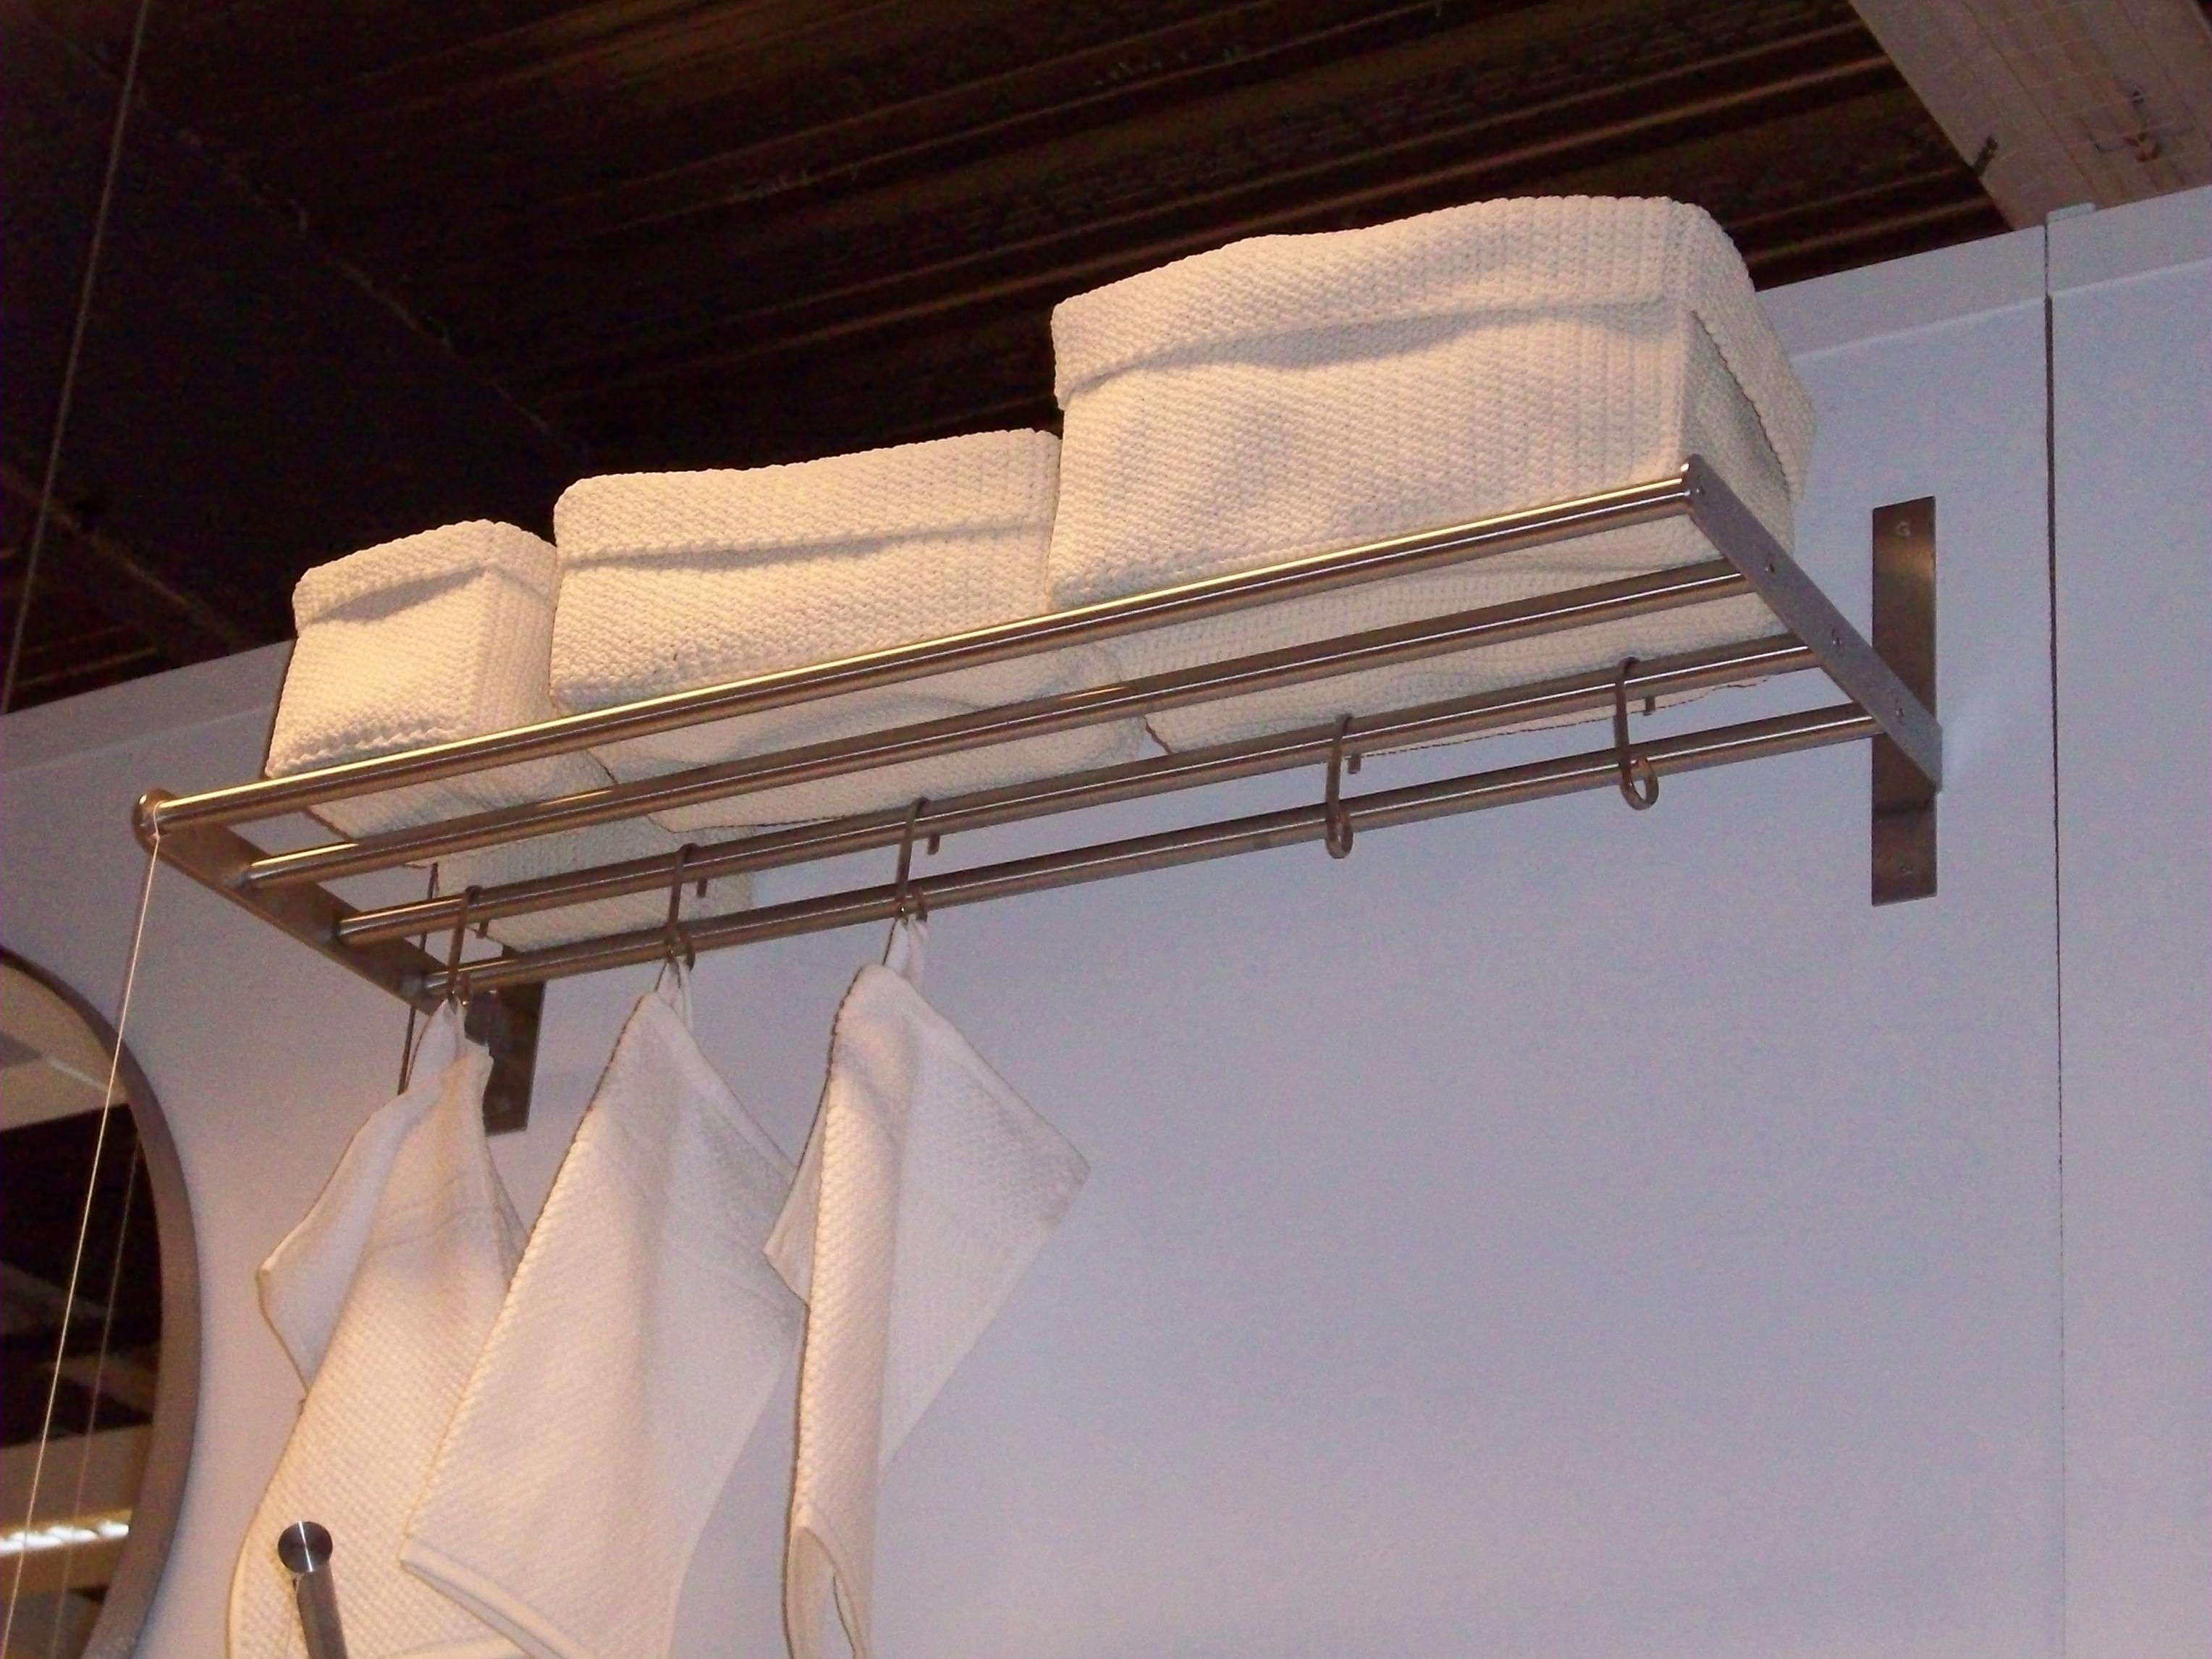 Hotel Towel Bar Inspiration